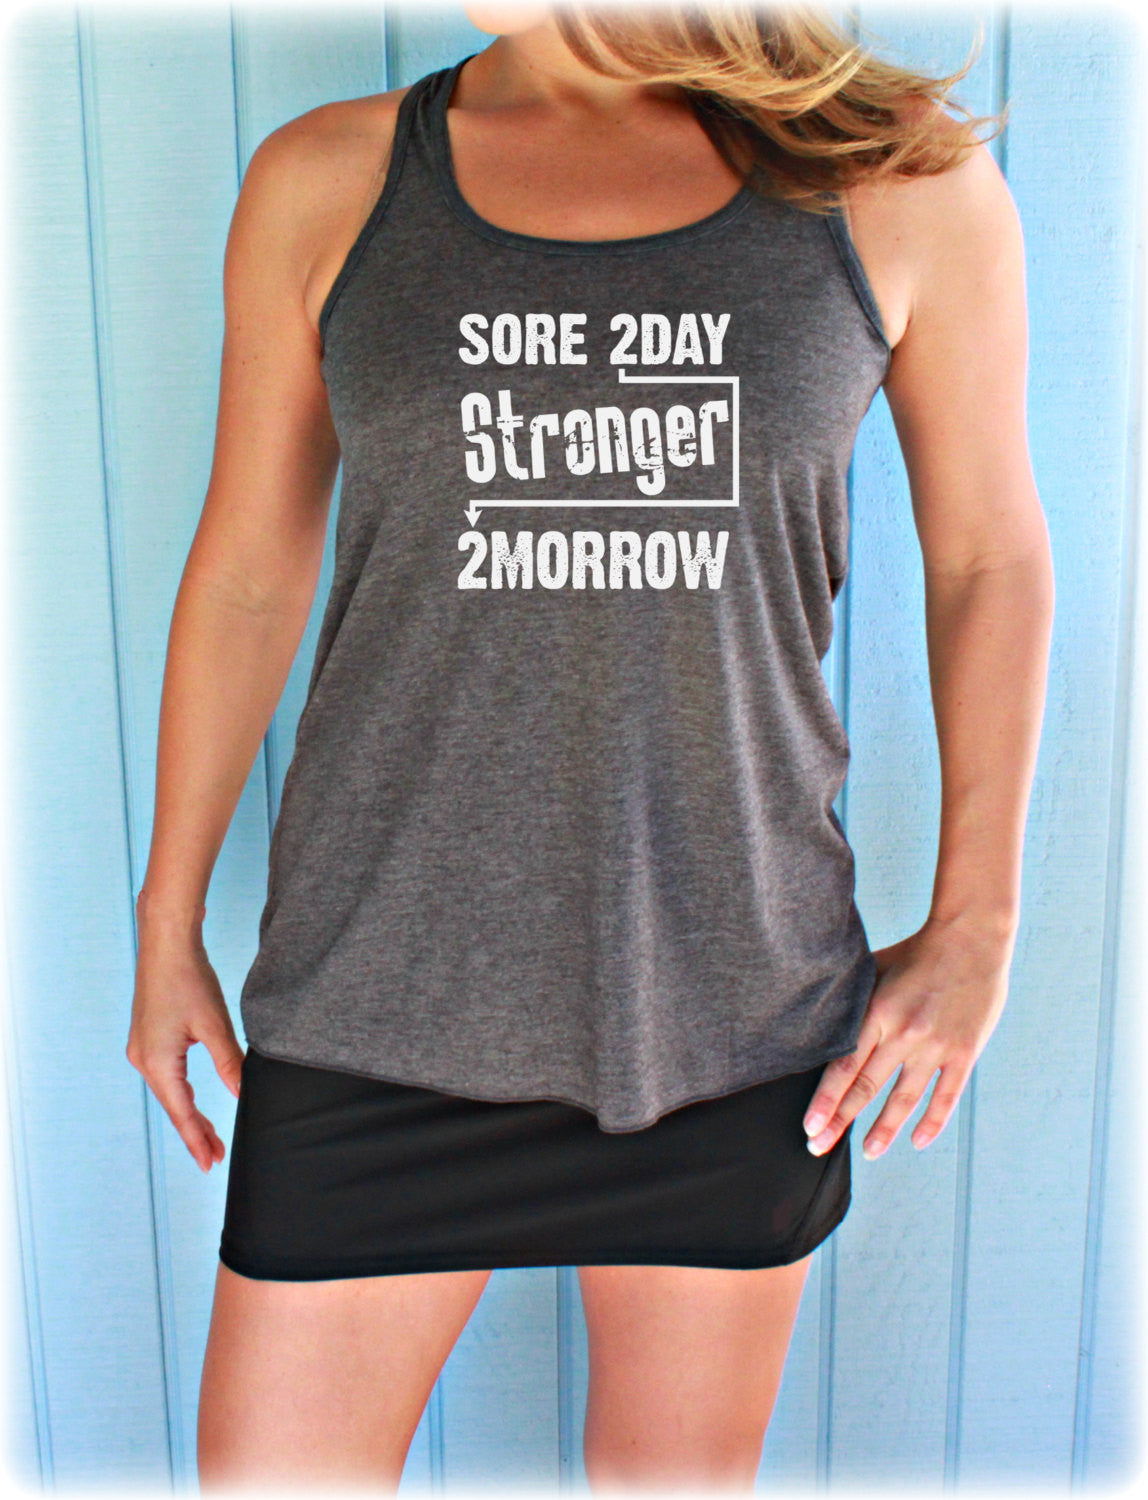 Flowy Fitness Tank Top. Women's Active Wear. Sore Today Stronger Tomorrow. Gym Motivation. Cute Womens Workout Clothing. Motivational Tank.